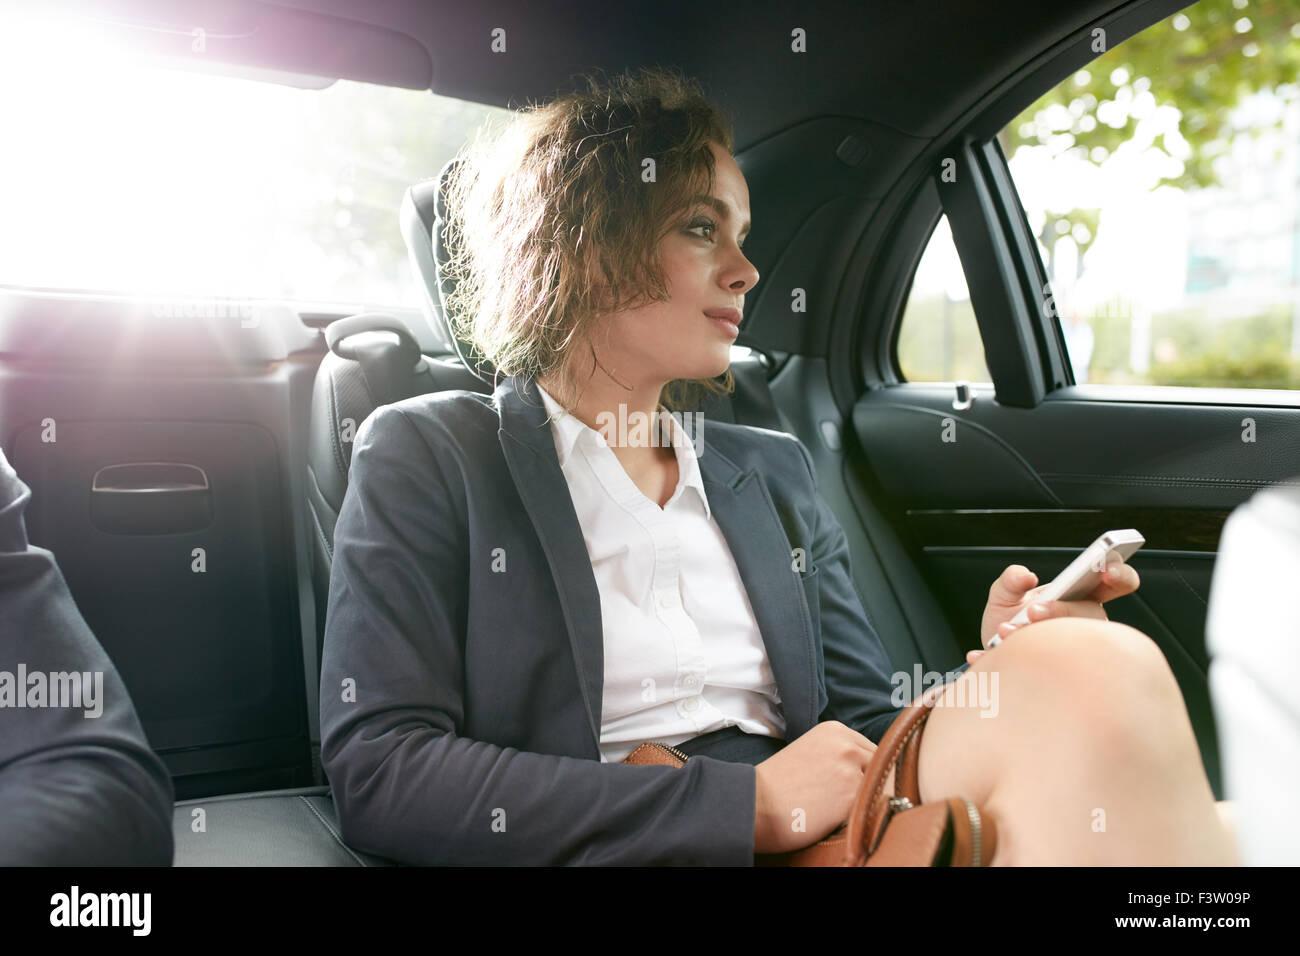 Young businesswoman traveling to work in the luxury car on the back seat holding mobile phone and looking outside - Stock Image